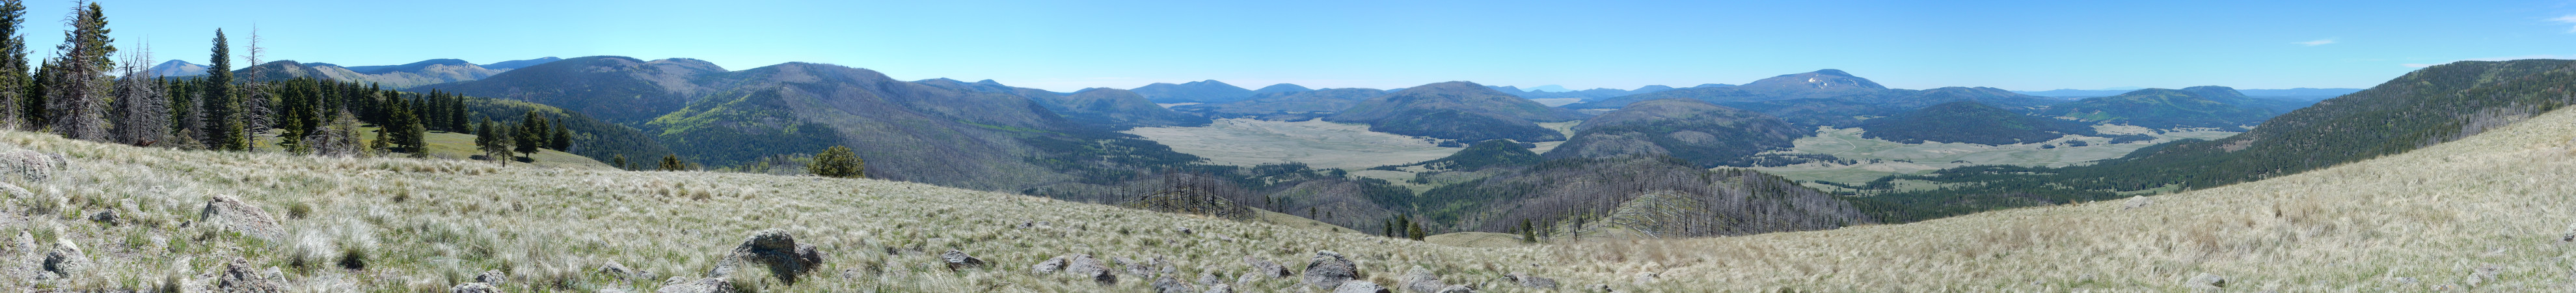 Valles Caldera north moat